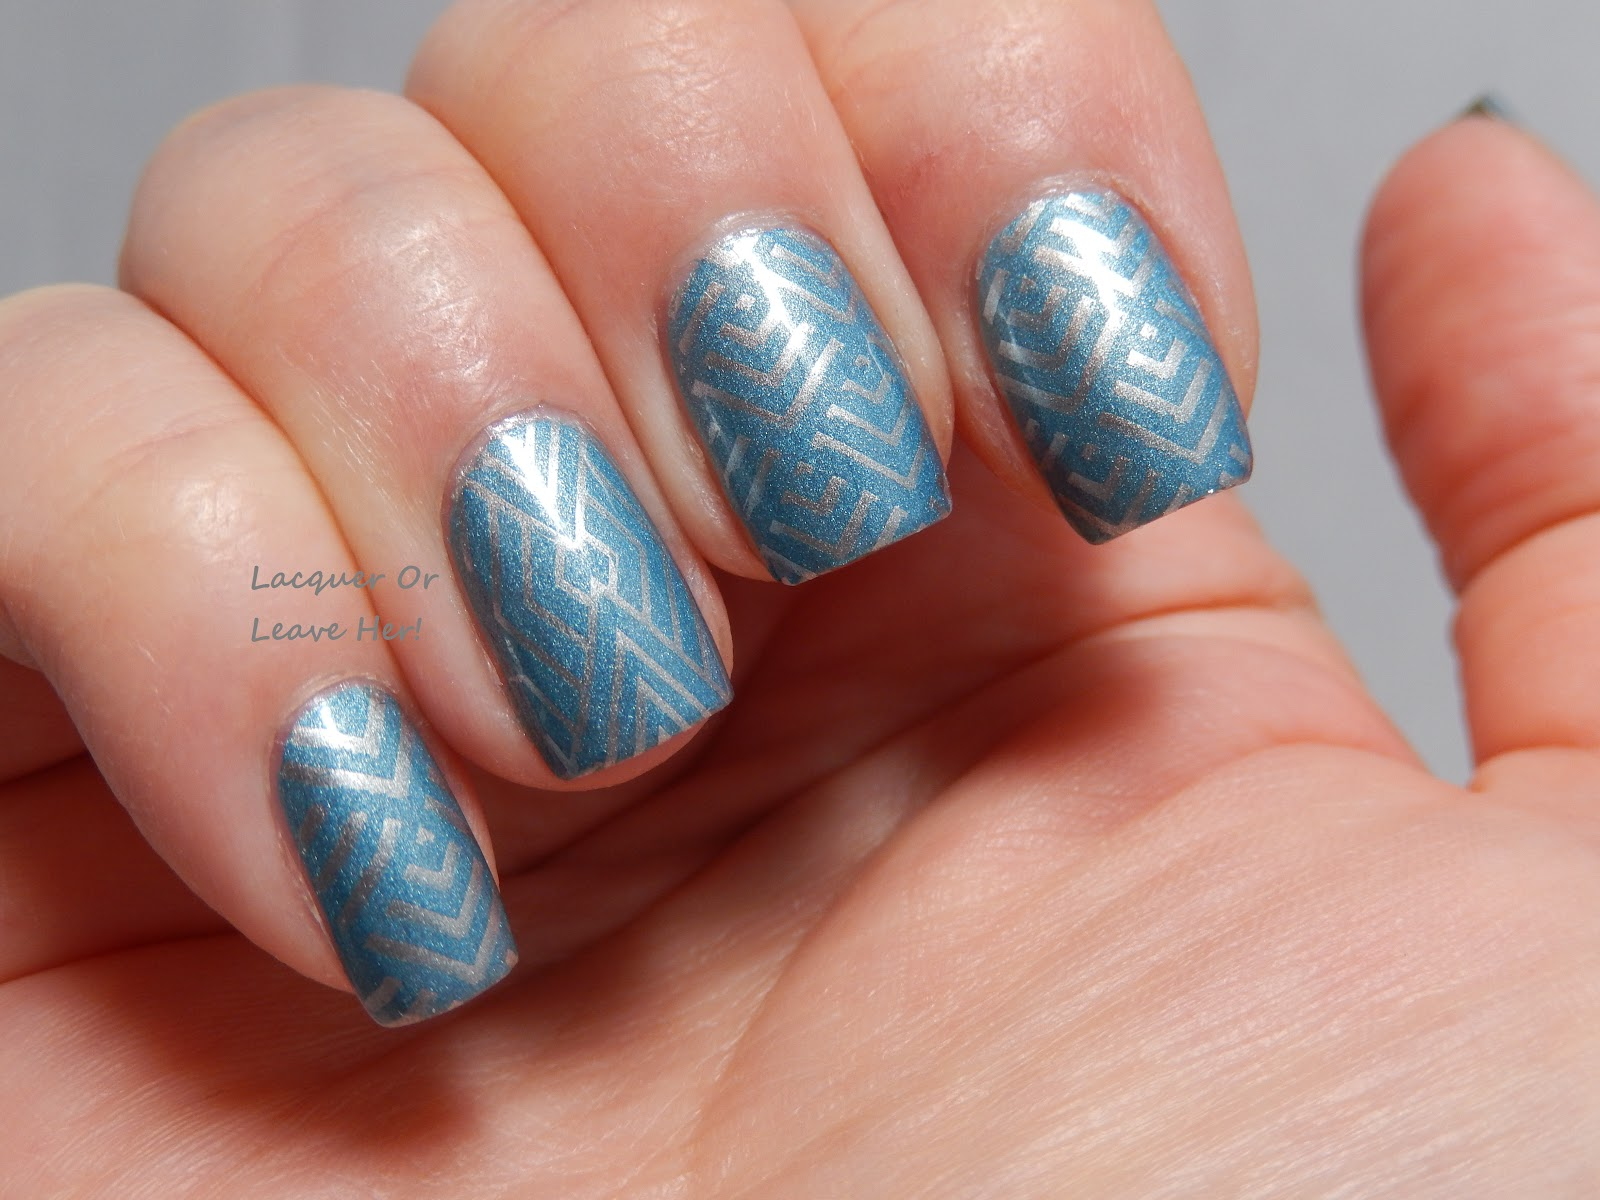 Lacquer or leave her before after deco diamonds with it girl nail art ig101 - Deco nail art ...